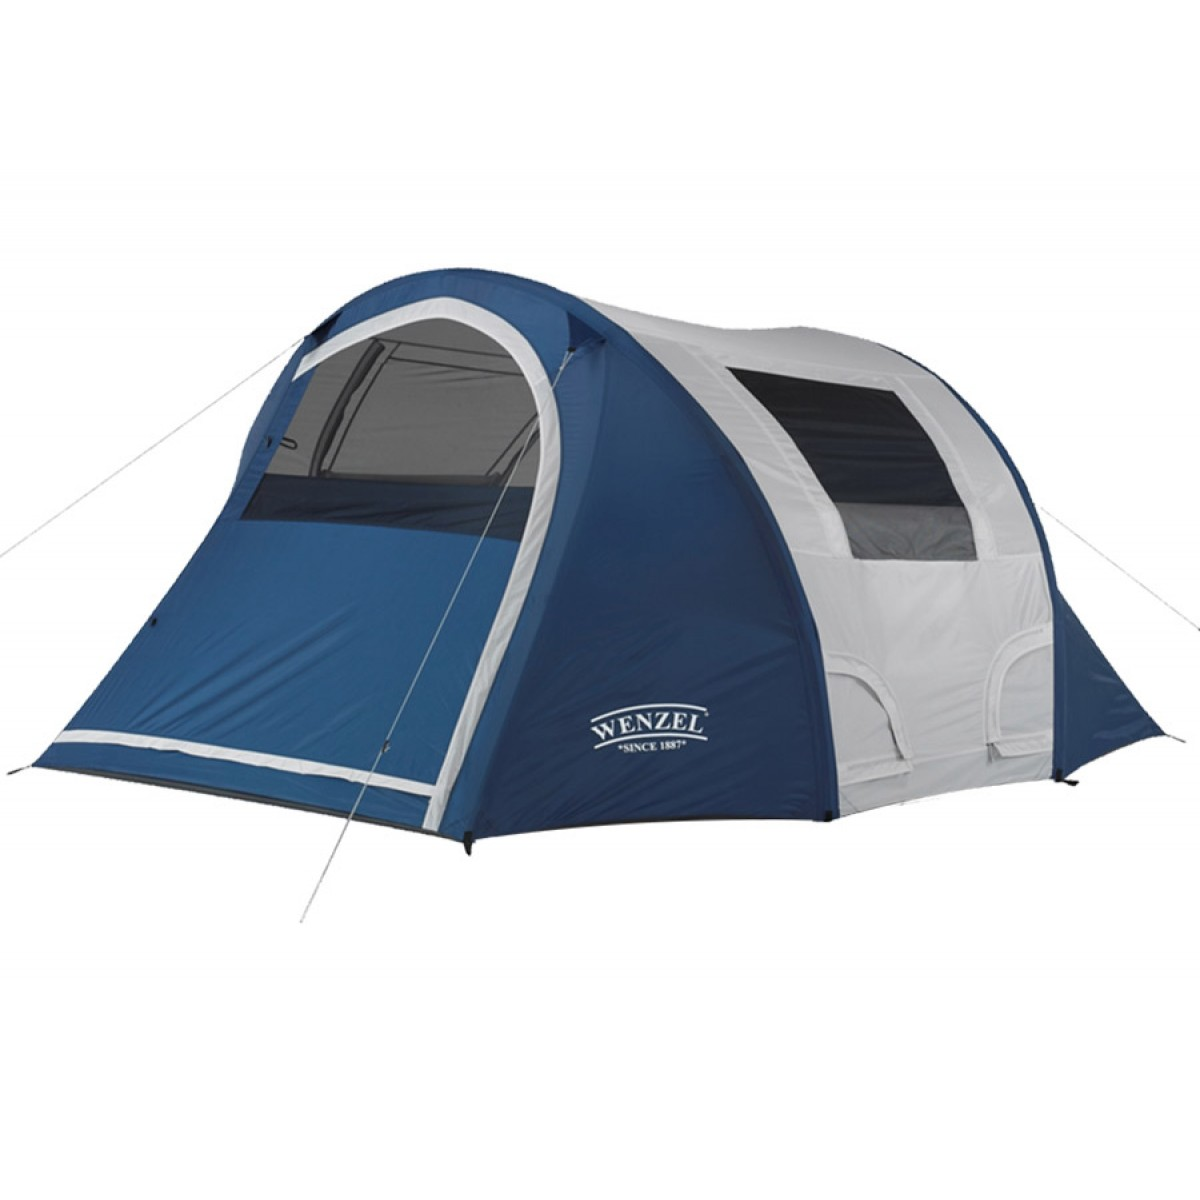 Wenzel Vortex 4 Person Air Pitch Tent 36483 Image 1  sc 1 st  Kellyco & Wenzel Vortex 4 Person Air Pitch Tent- Kellyco